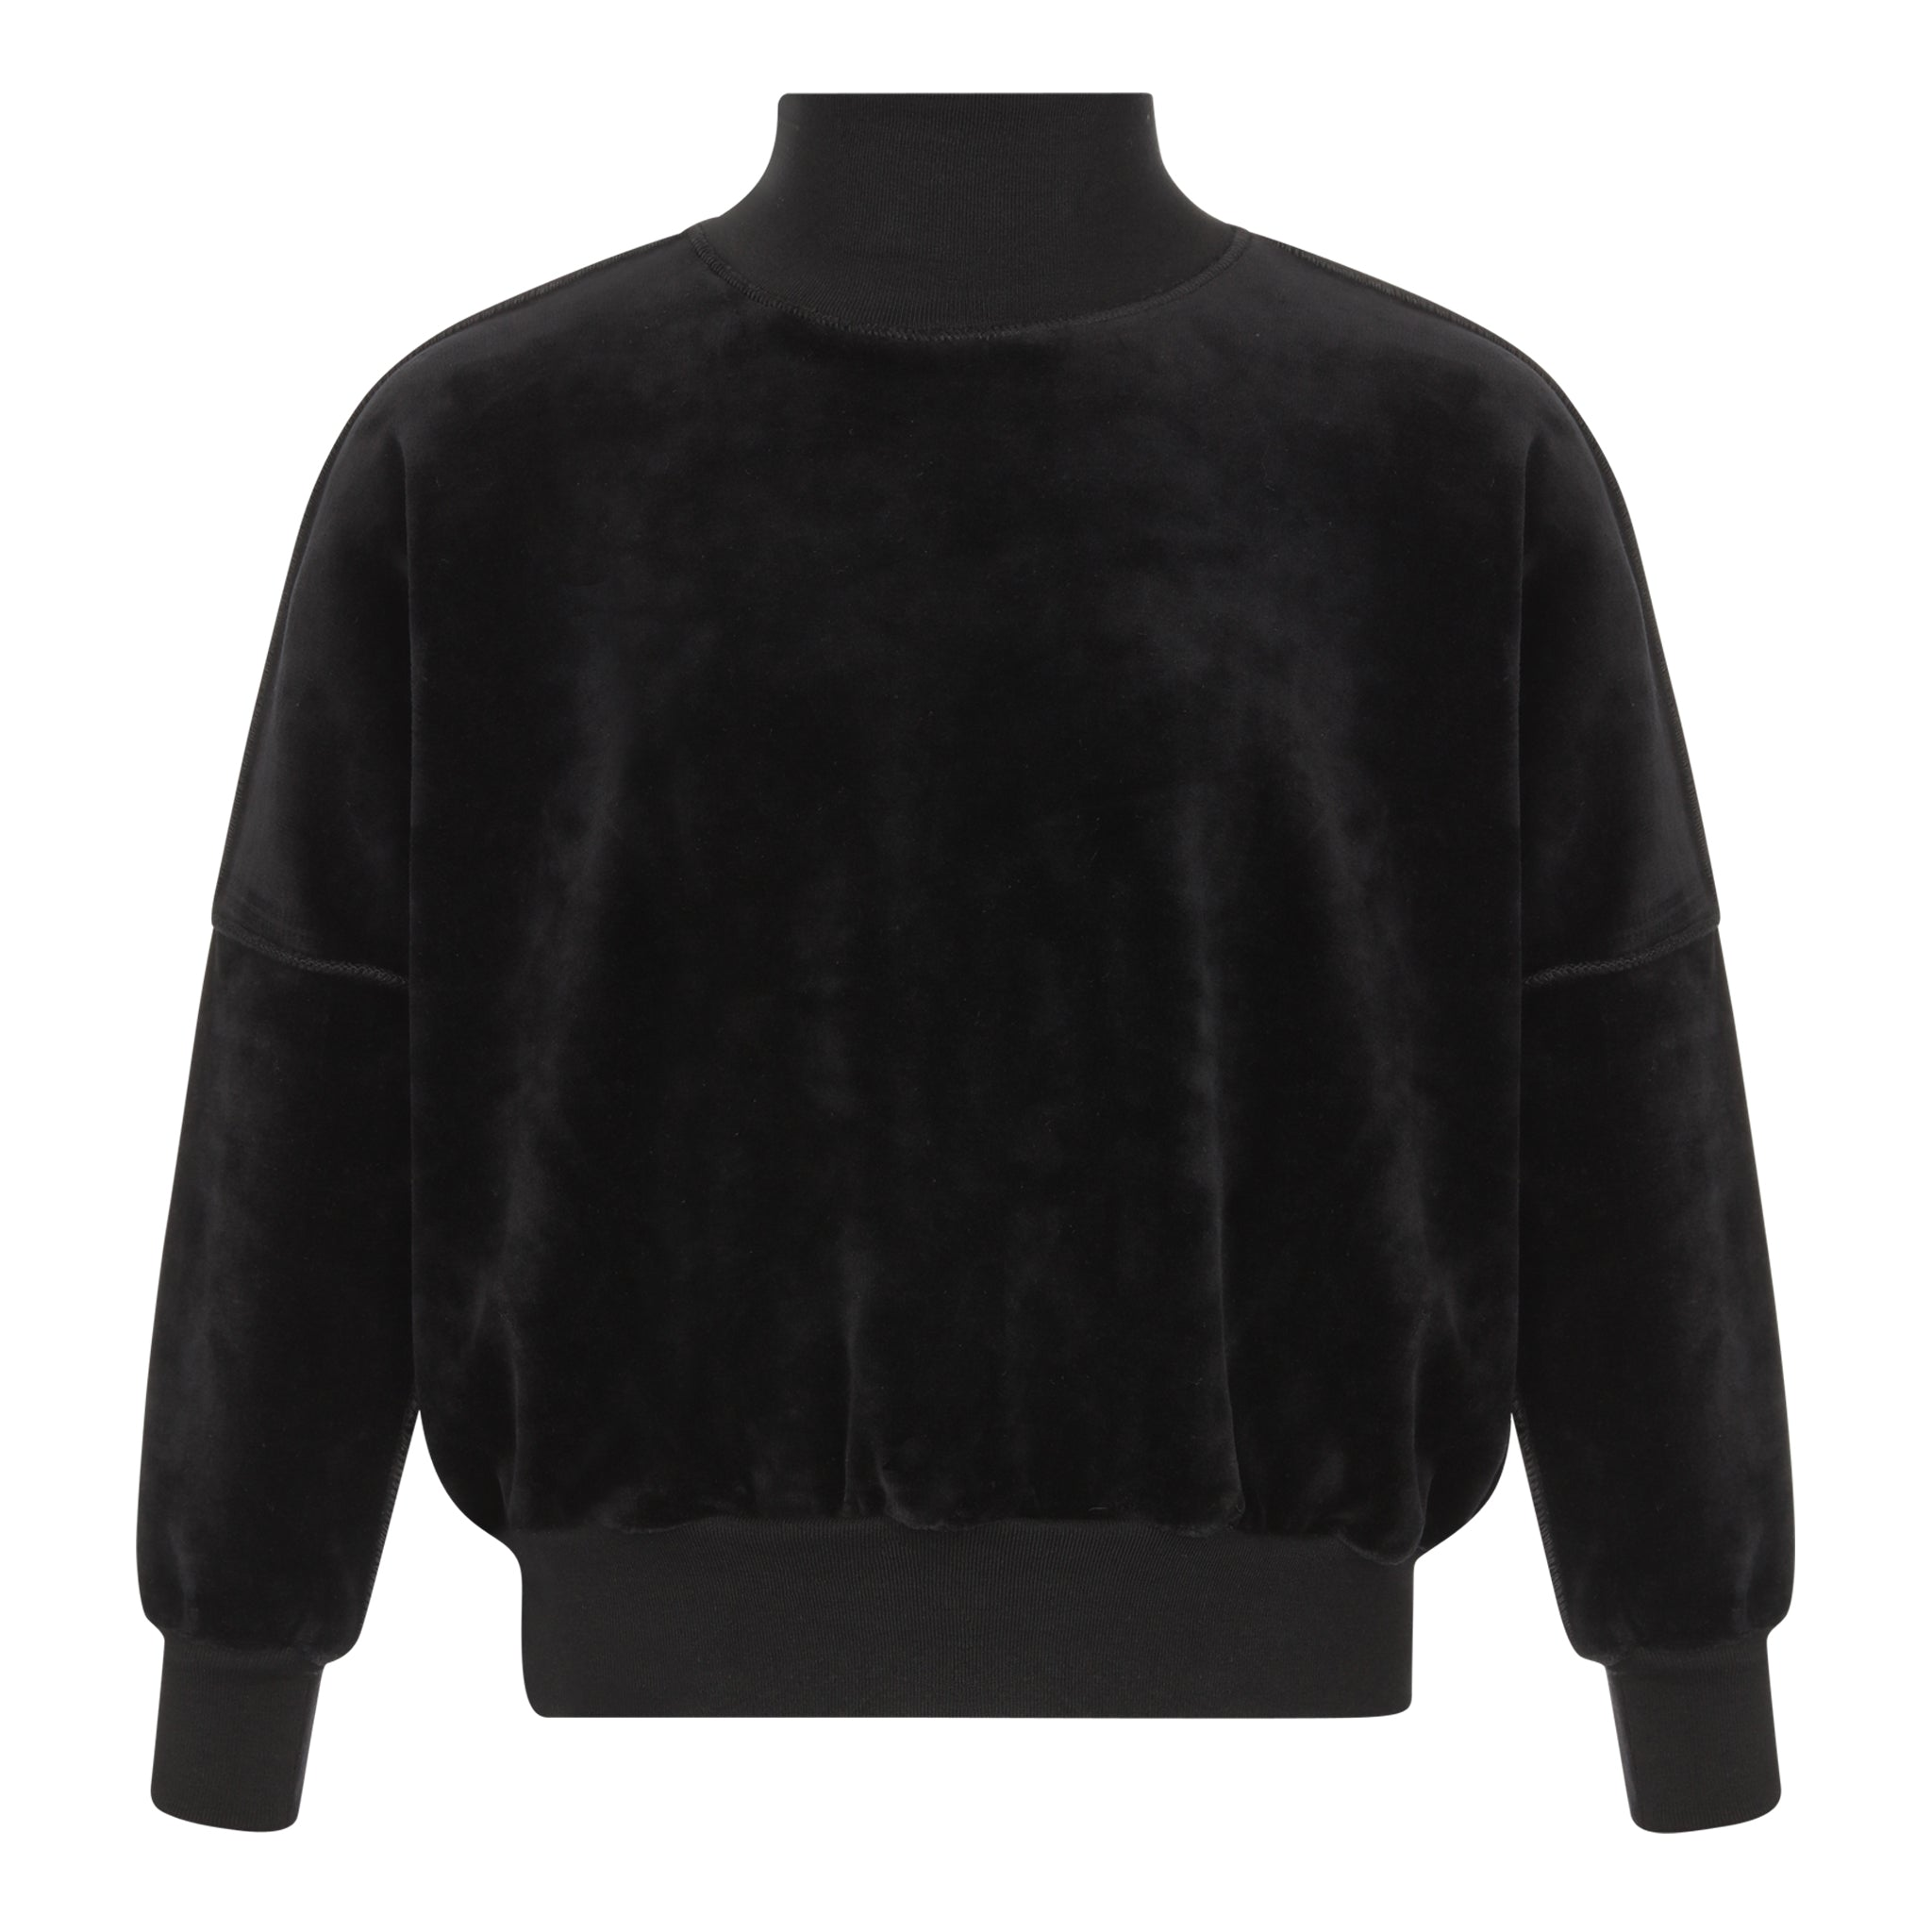 Parni Black Velour Dolman Turtleneck